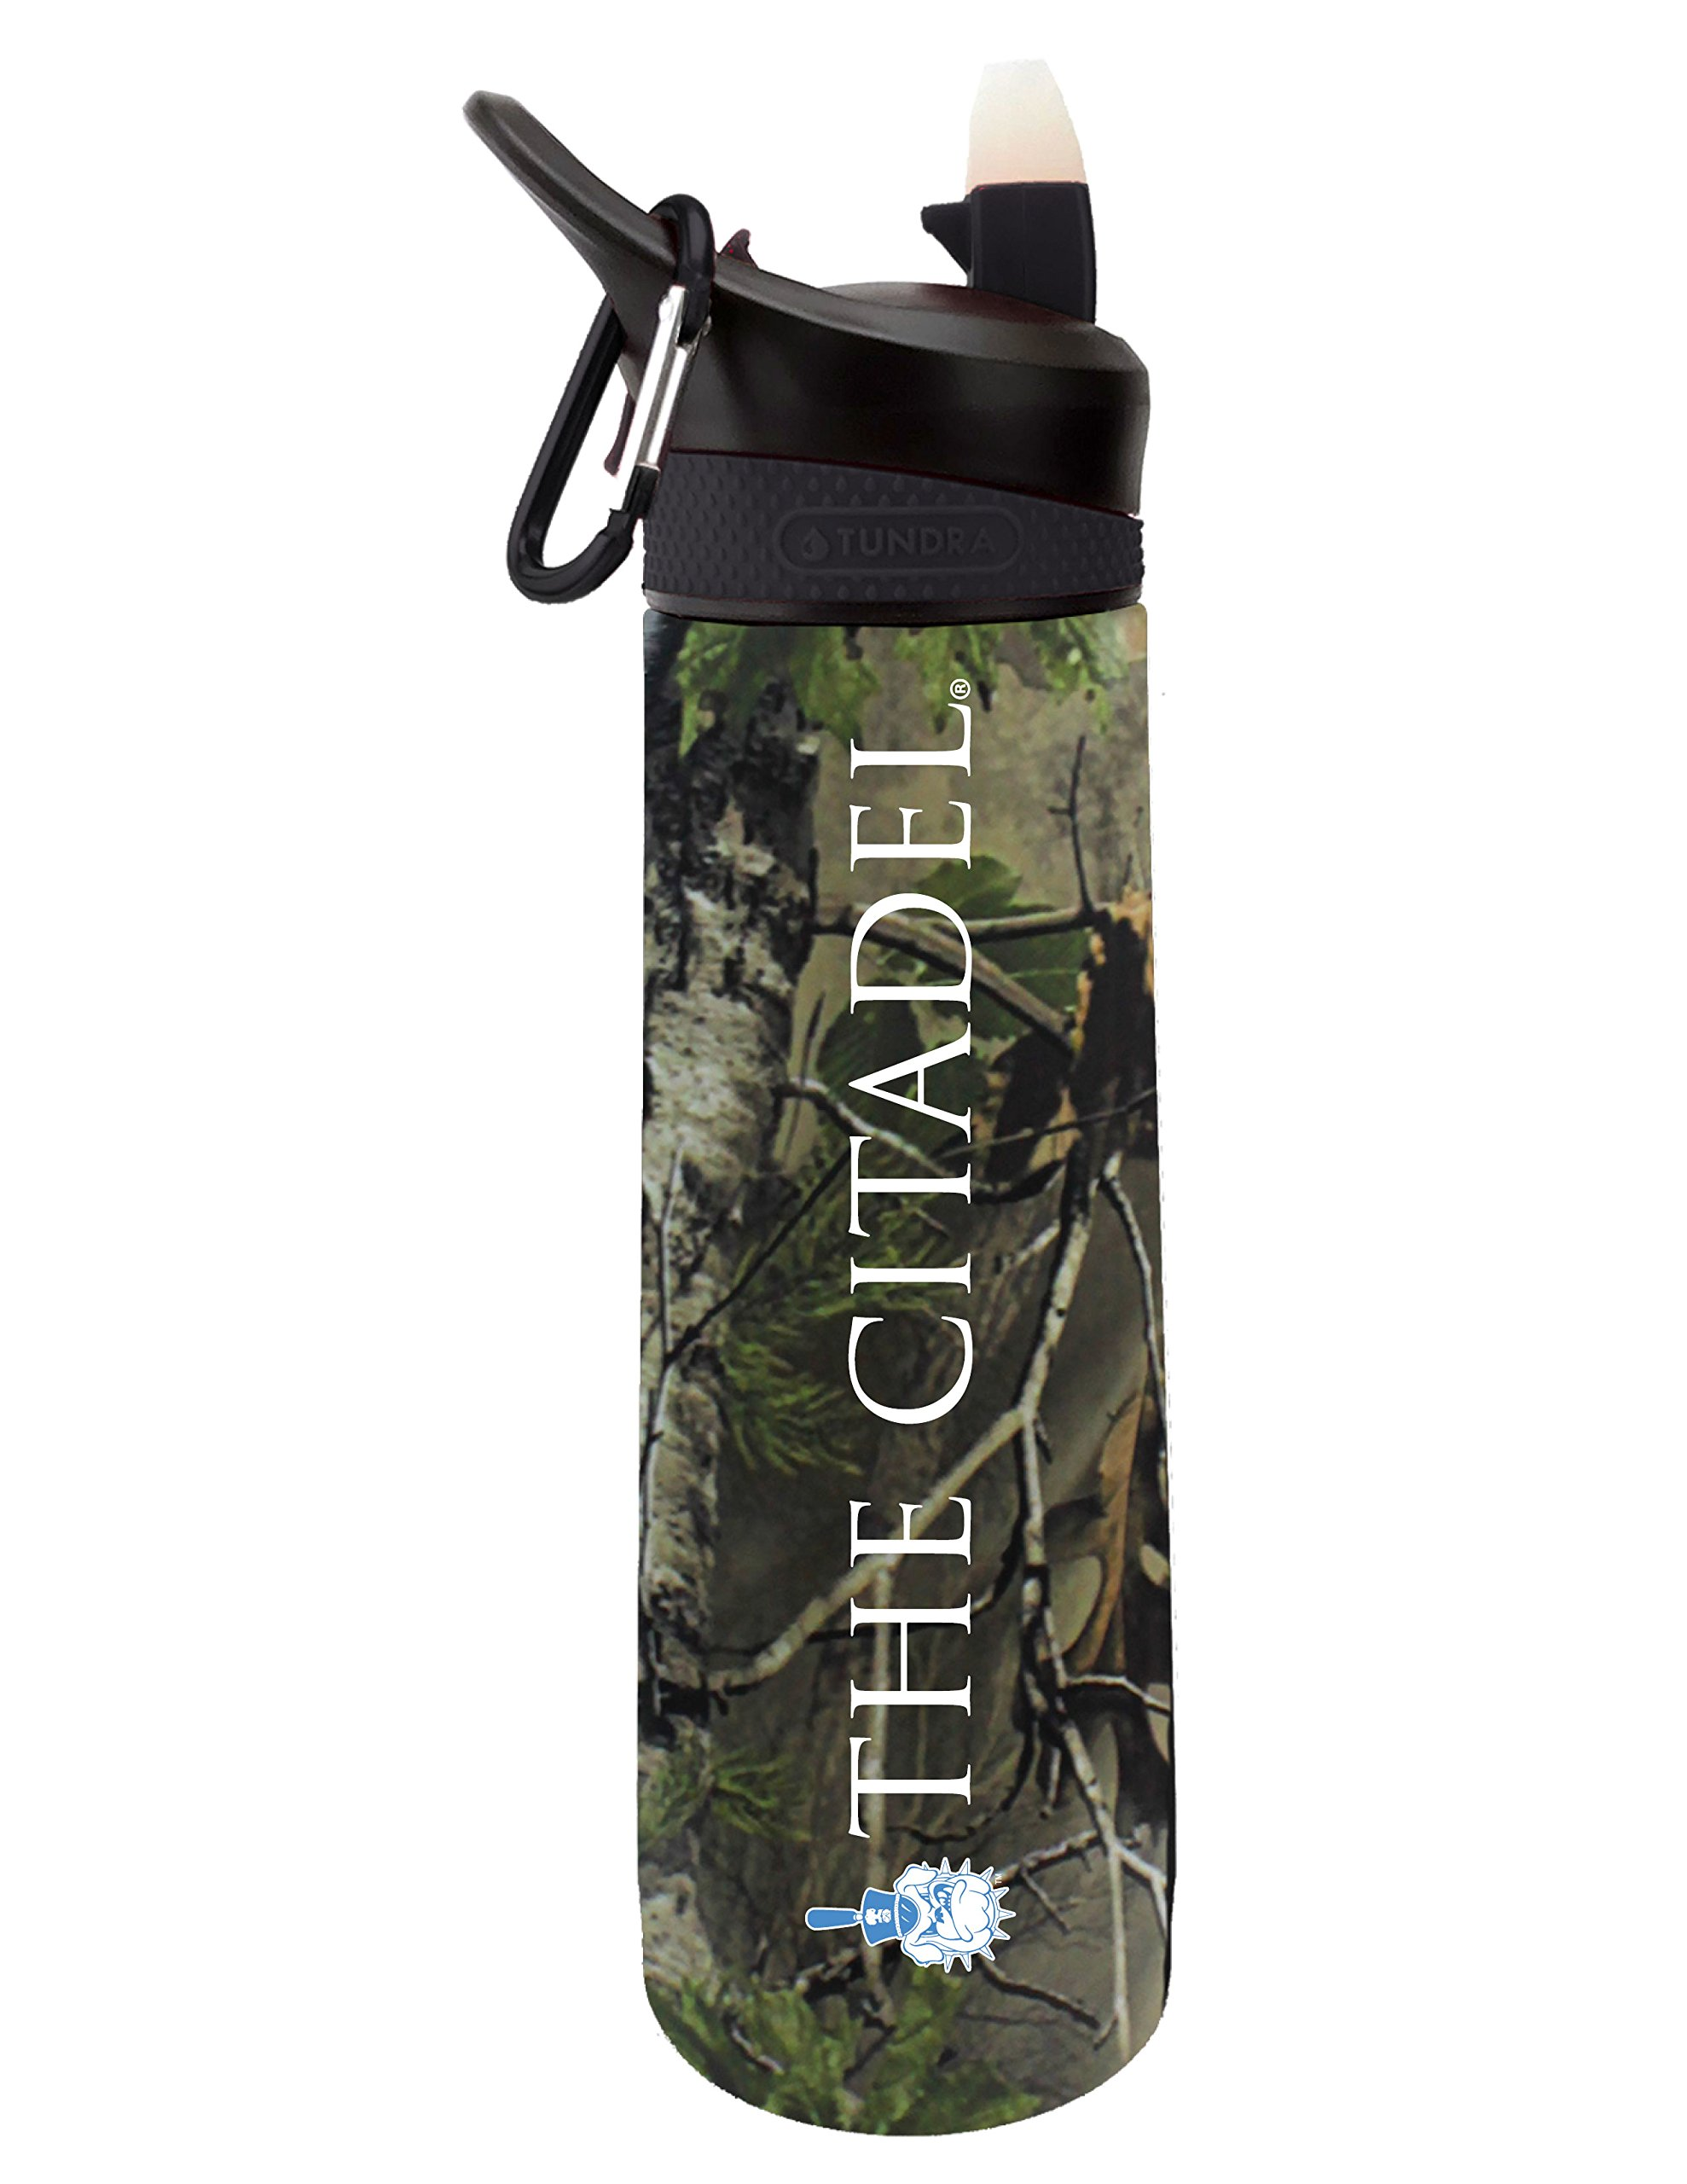 The Citadel Bulldog Dual Walled Stainless Steel Sports Bottle, Design 1 - Oak